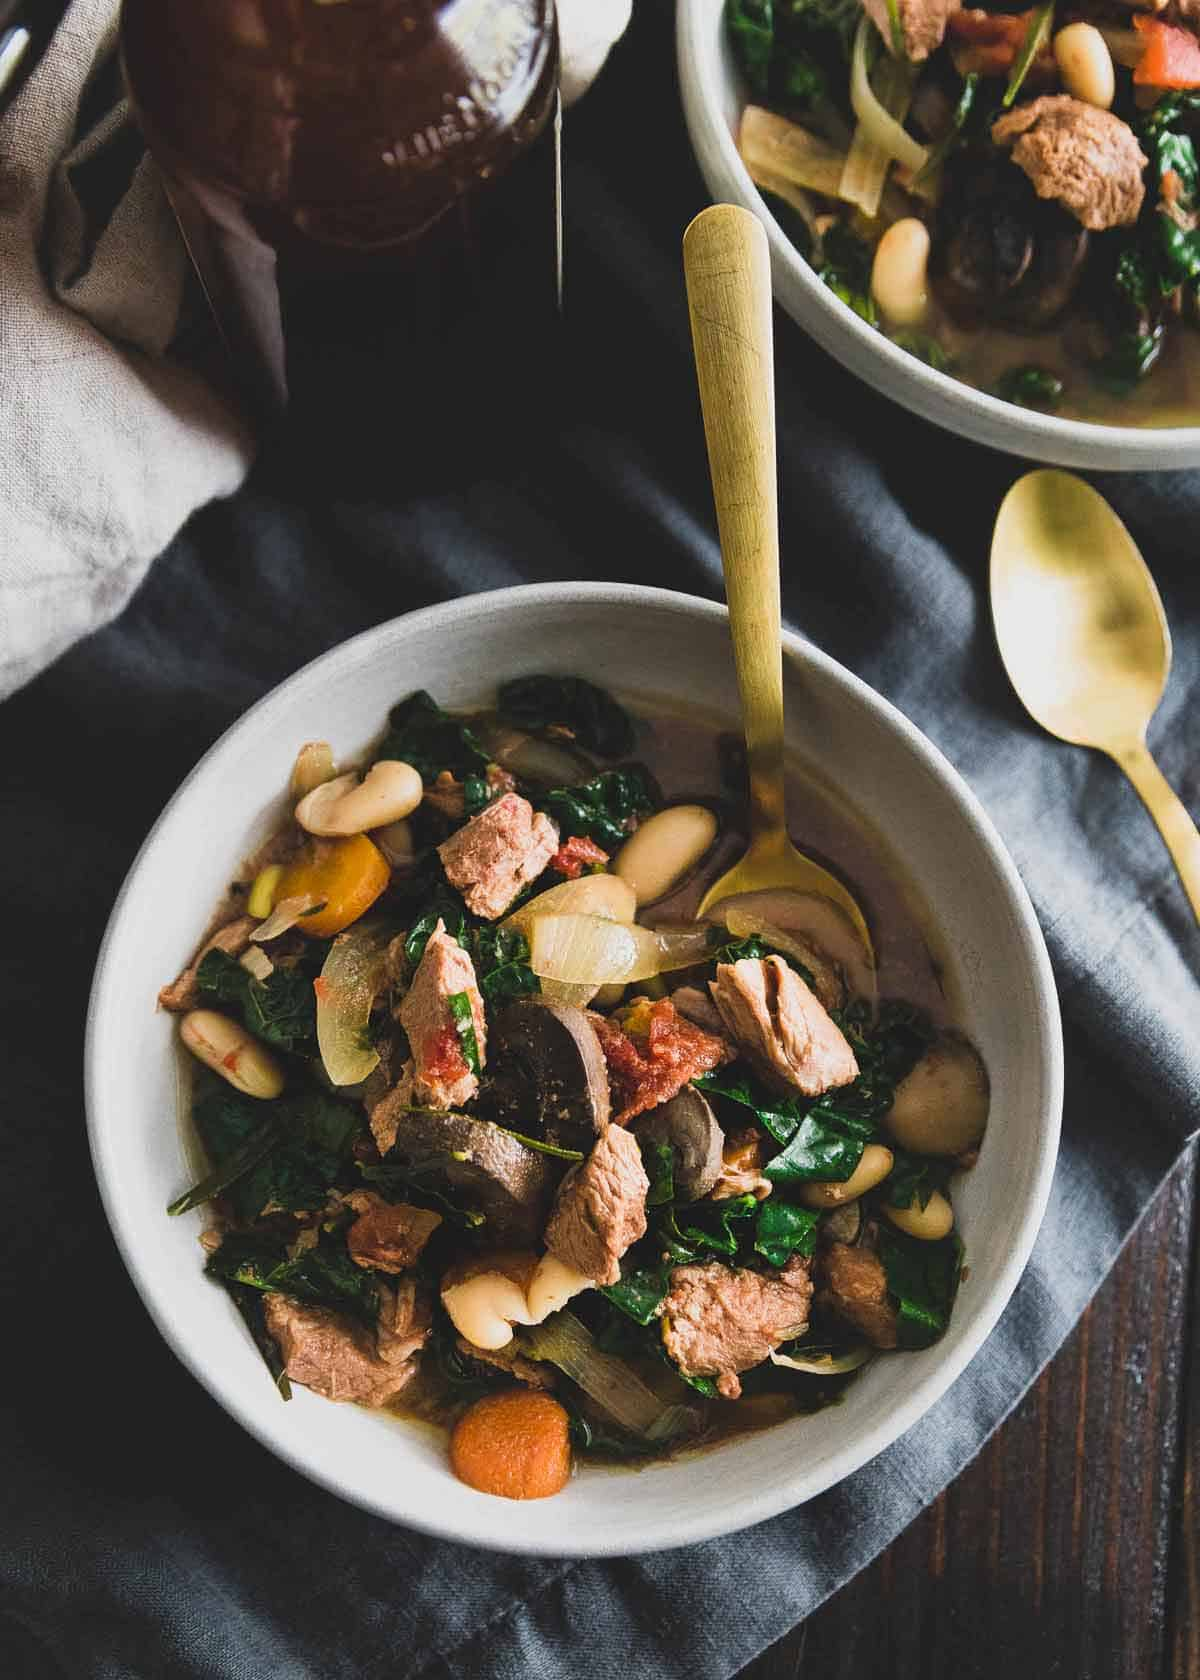 This slow cooker lamb stew is a hearty, cozy bowl of comfort made with lean American lamb stew meat, mushrooms, white beans, kale, tomatoes and rosemary.